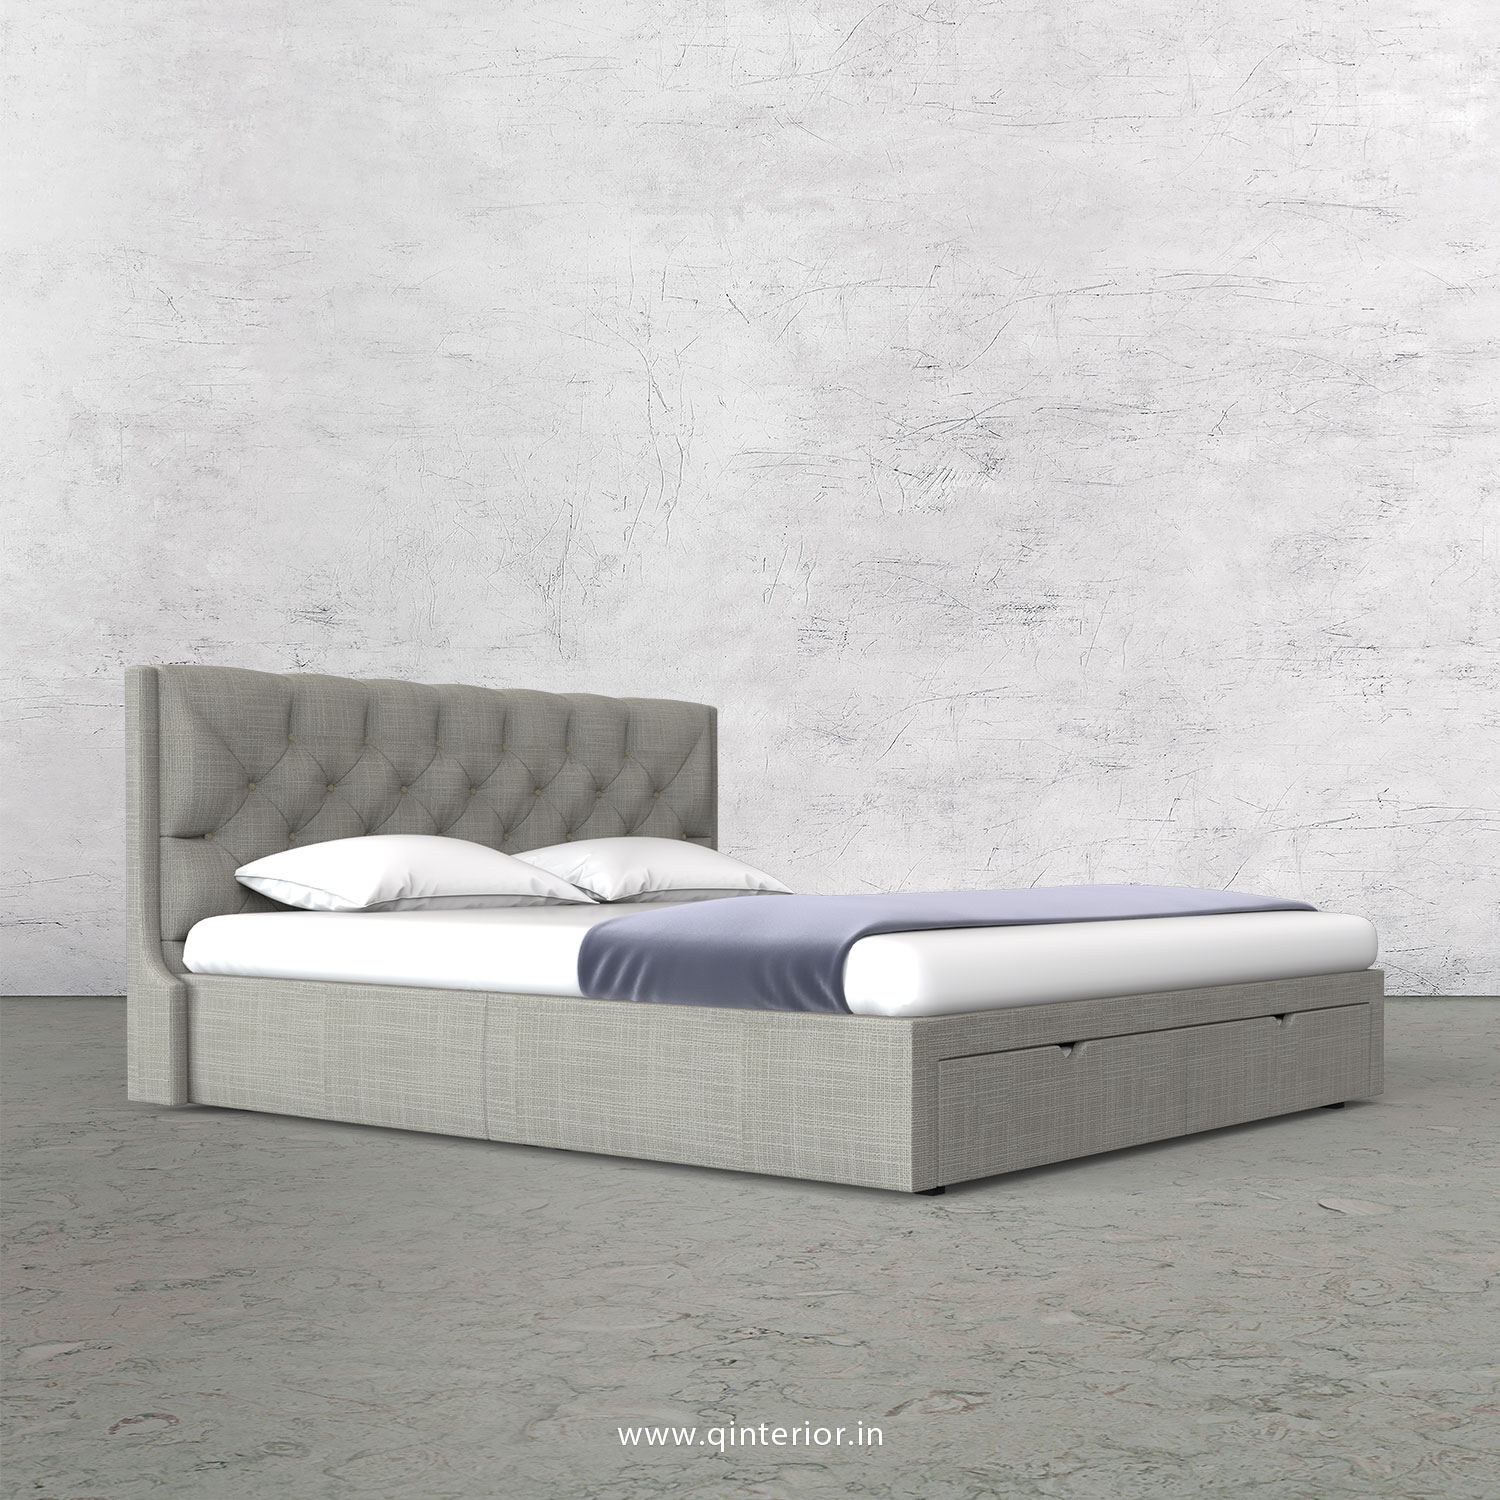 Scorpius King Size Storage Bed in Cotton Plain - KBD001 CP04